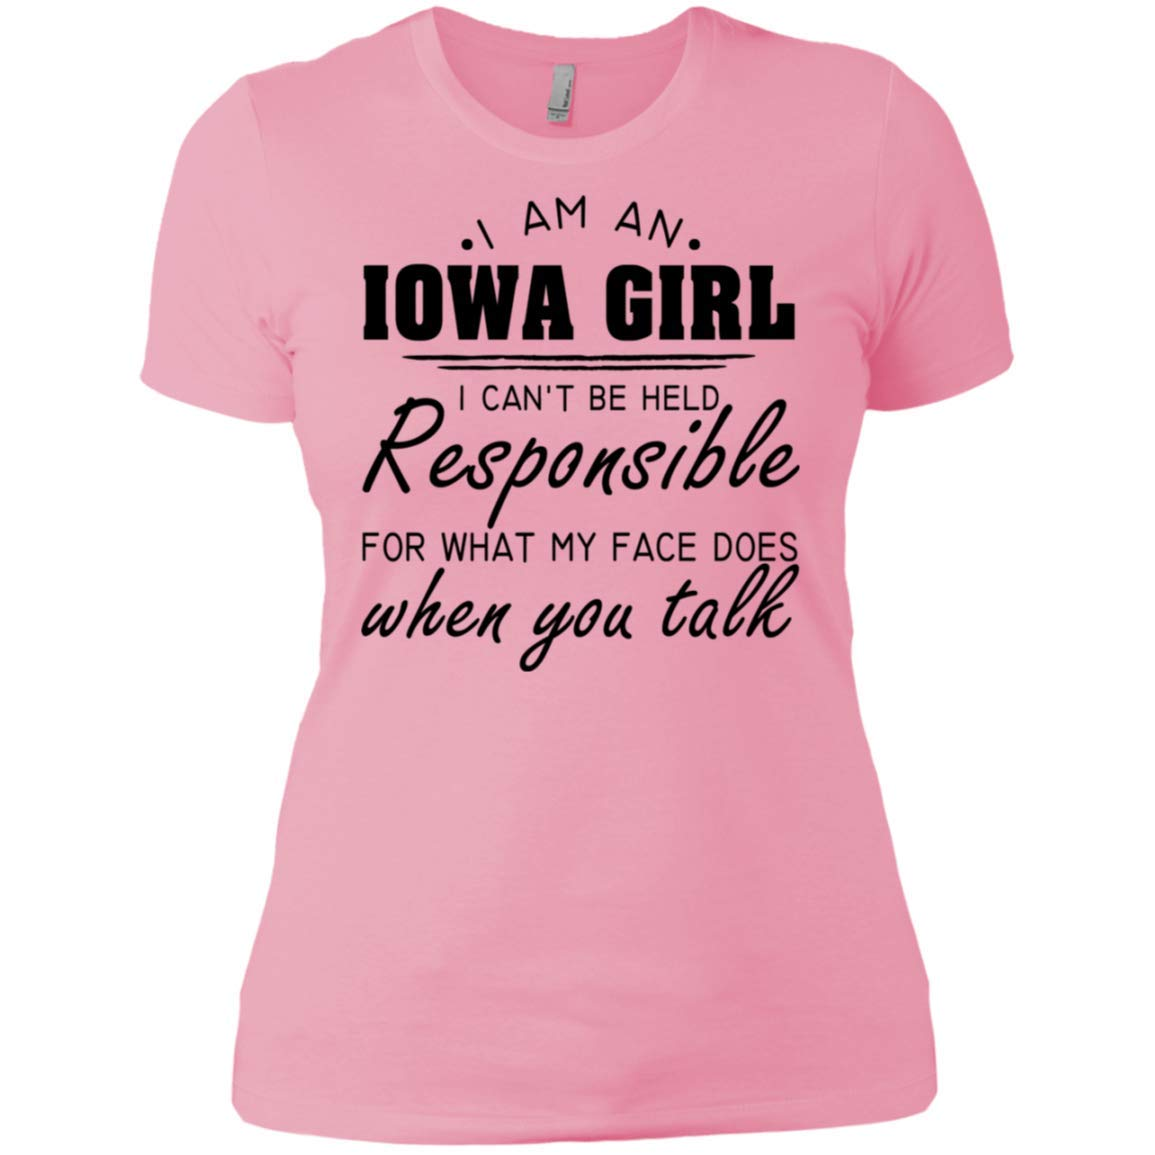 I AM an Iowa Girl I Cant BE HELD Responsible for What My FACE Does When You Talk